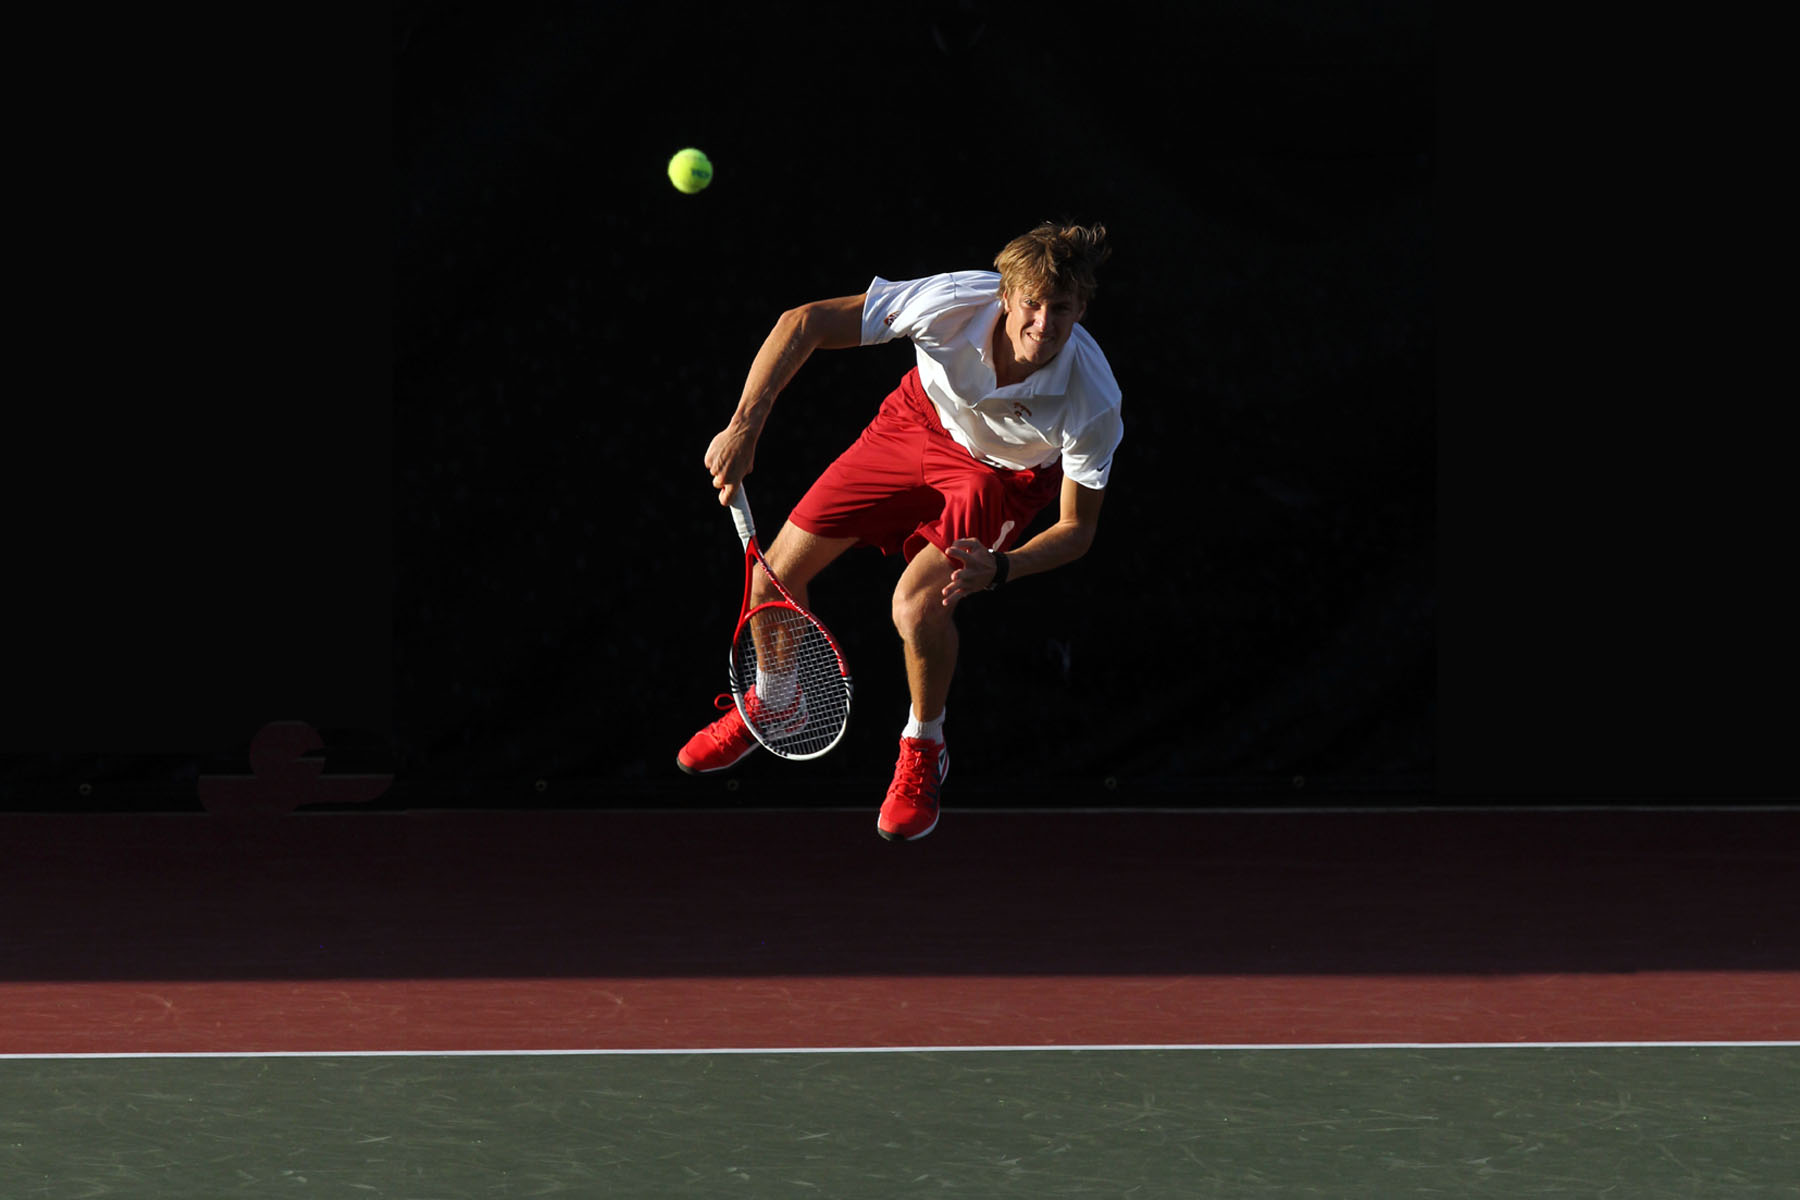 Men's tennis player Max de Vroome. (Photo/Bill Kallenberg)